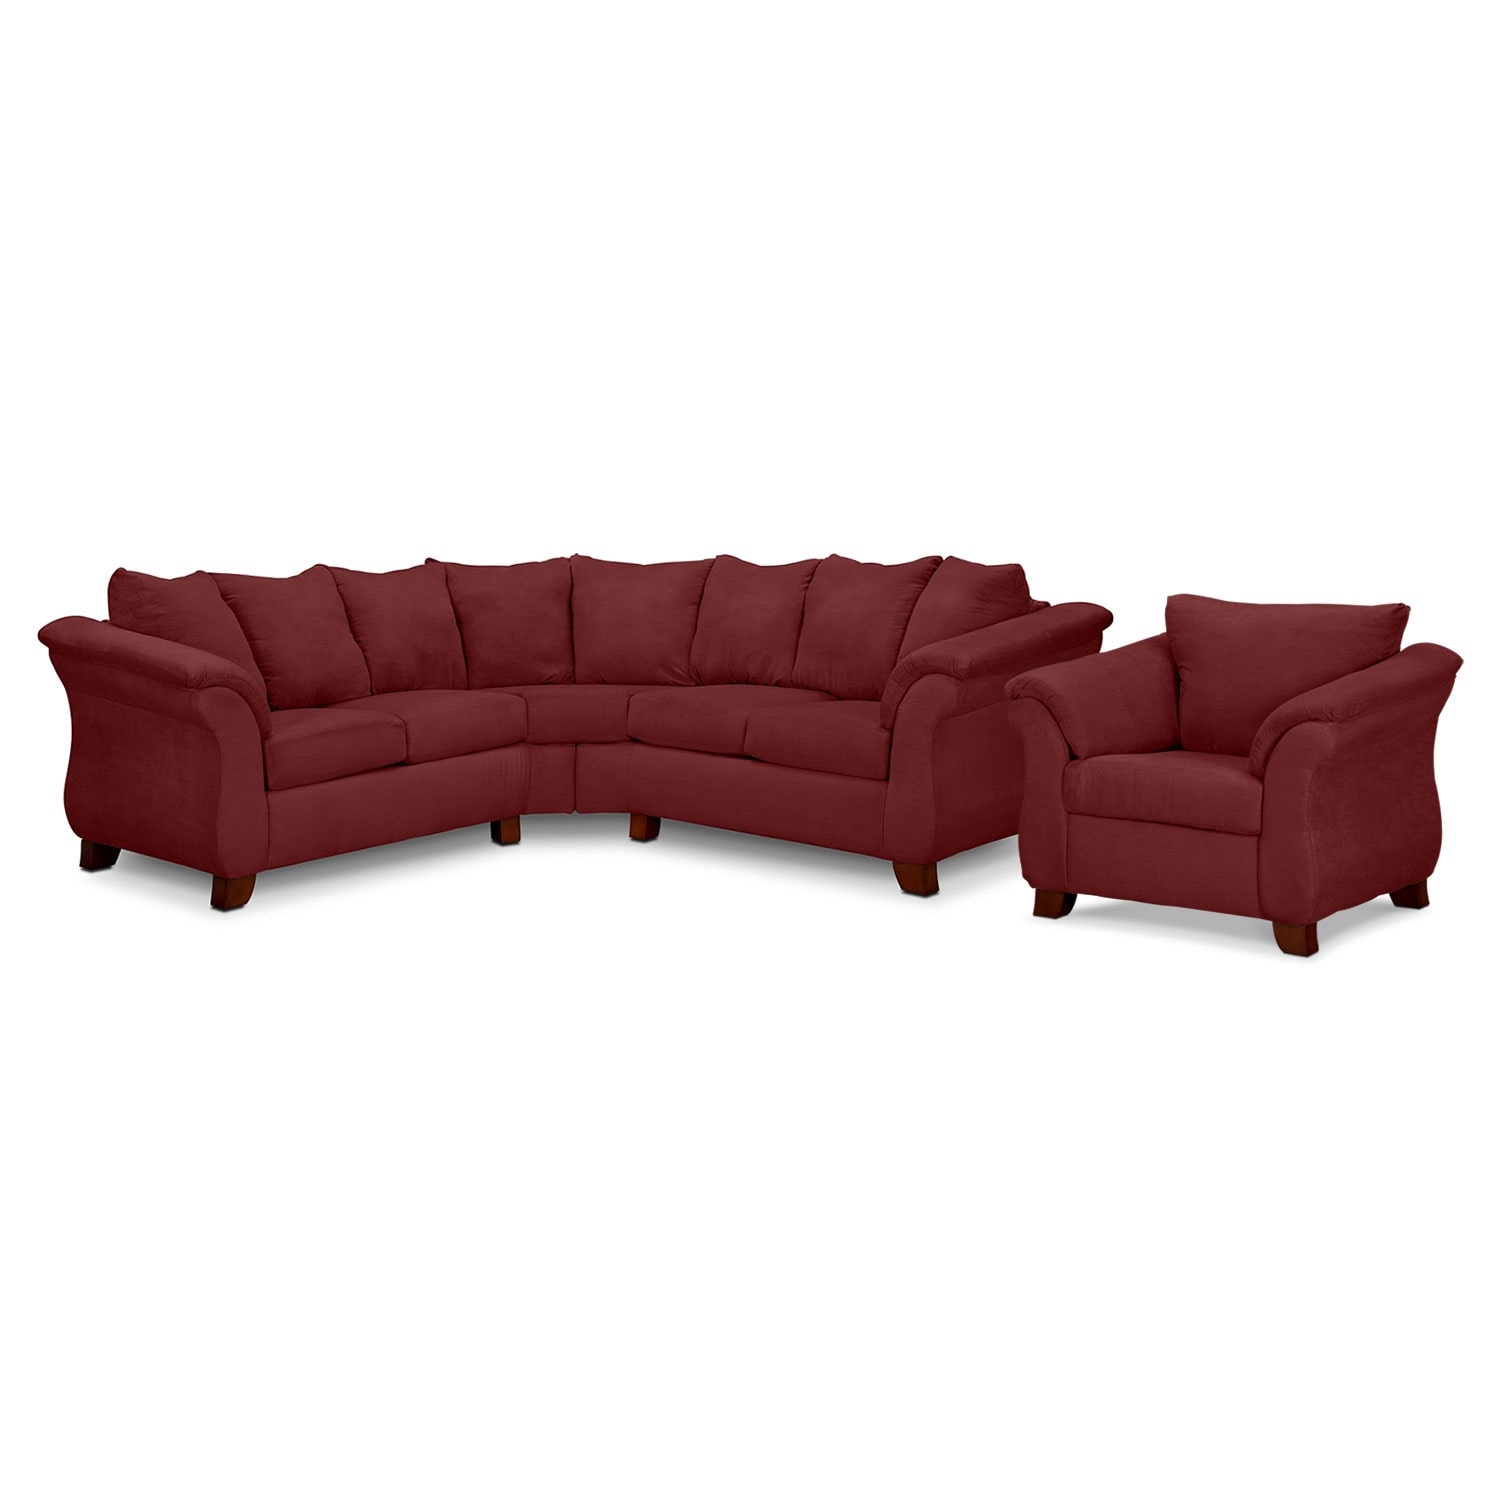 adrian red 2 piece sectional and chair set red value city